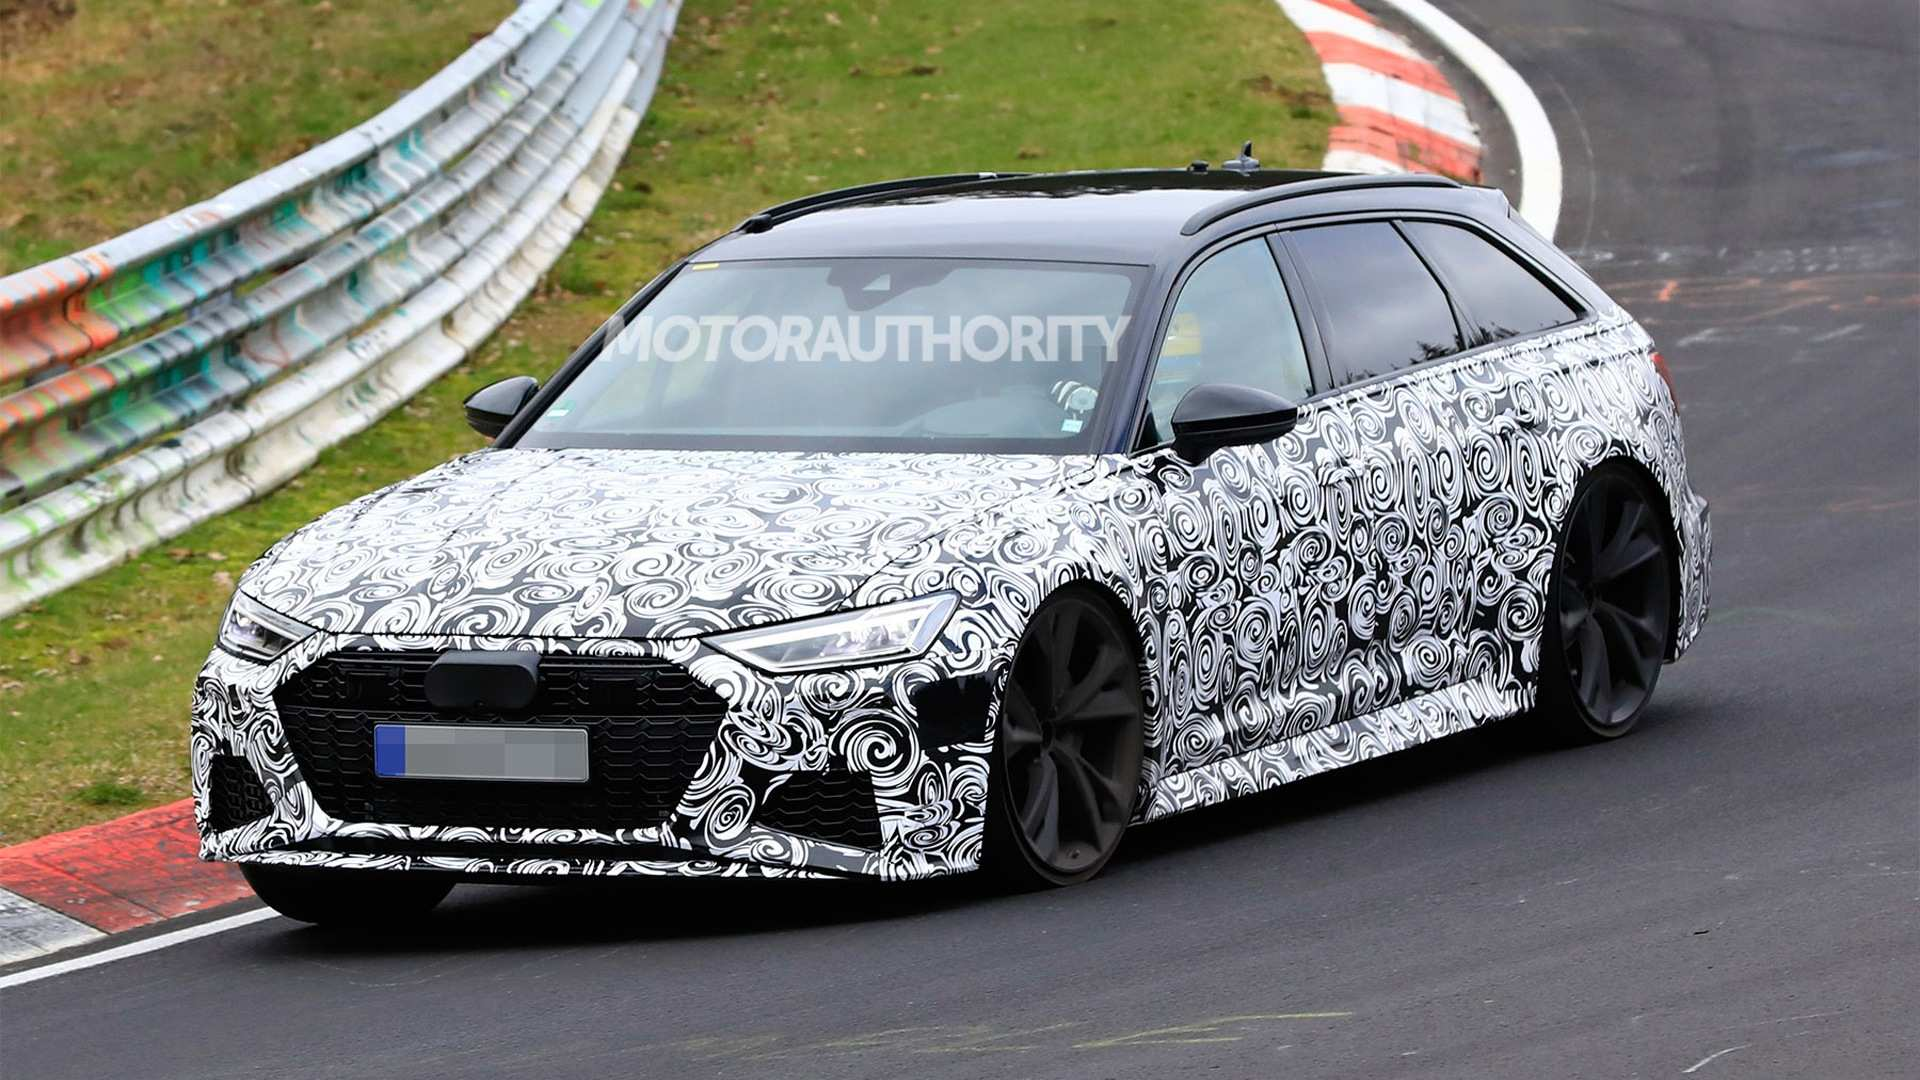 64 New 2020 Audi Rs6 Wagon Speed Test by 2020 Audi Rs6 Wagon